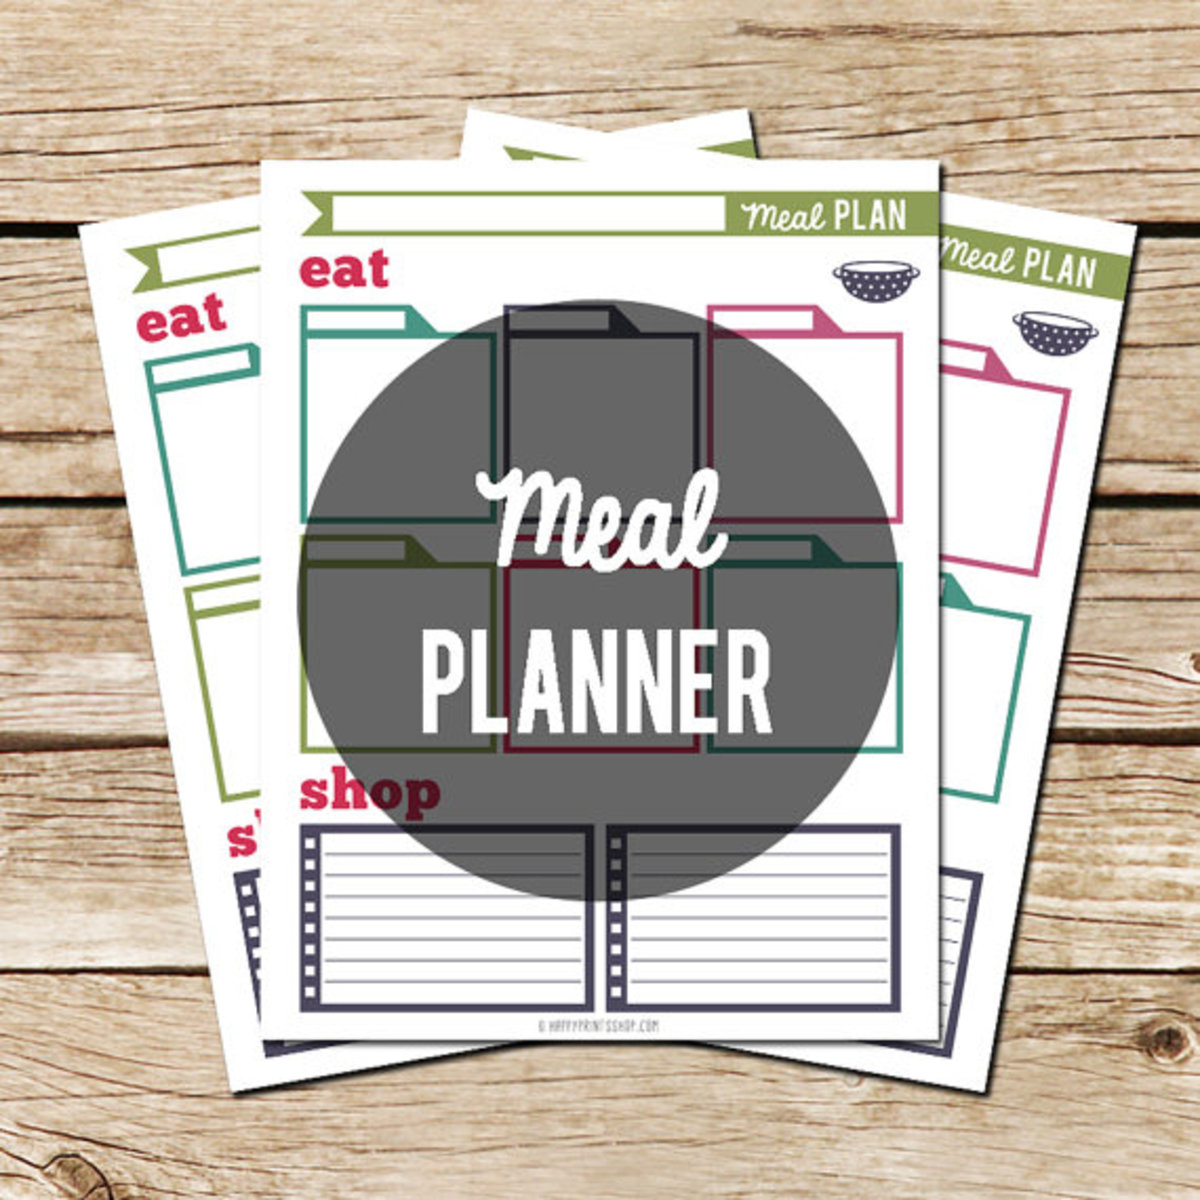 Happy Print Ship Meal Planner Printable - TodaysMama.com